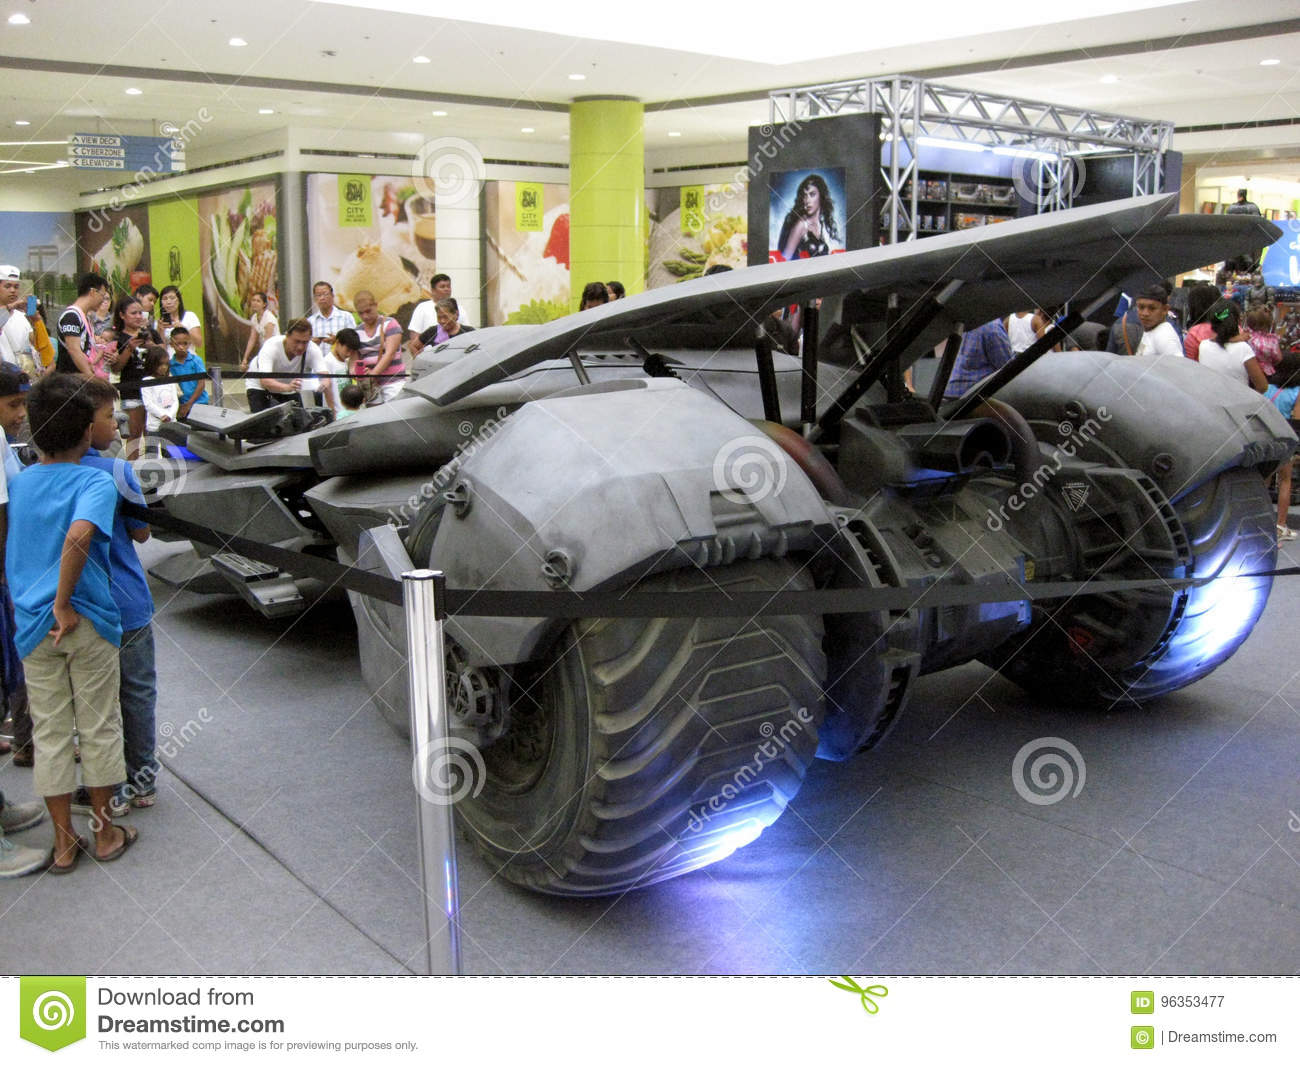 Awe Inspiring Batmobile Exhibit Sm City San Jose Del Monte Mall Bulacan Download Free Architecture Designs Scobabritishbridgeorg